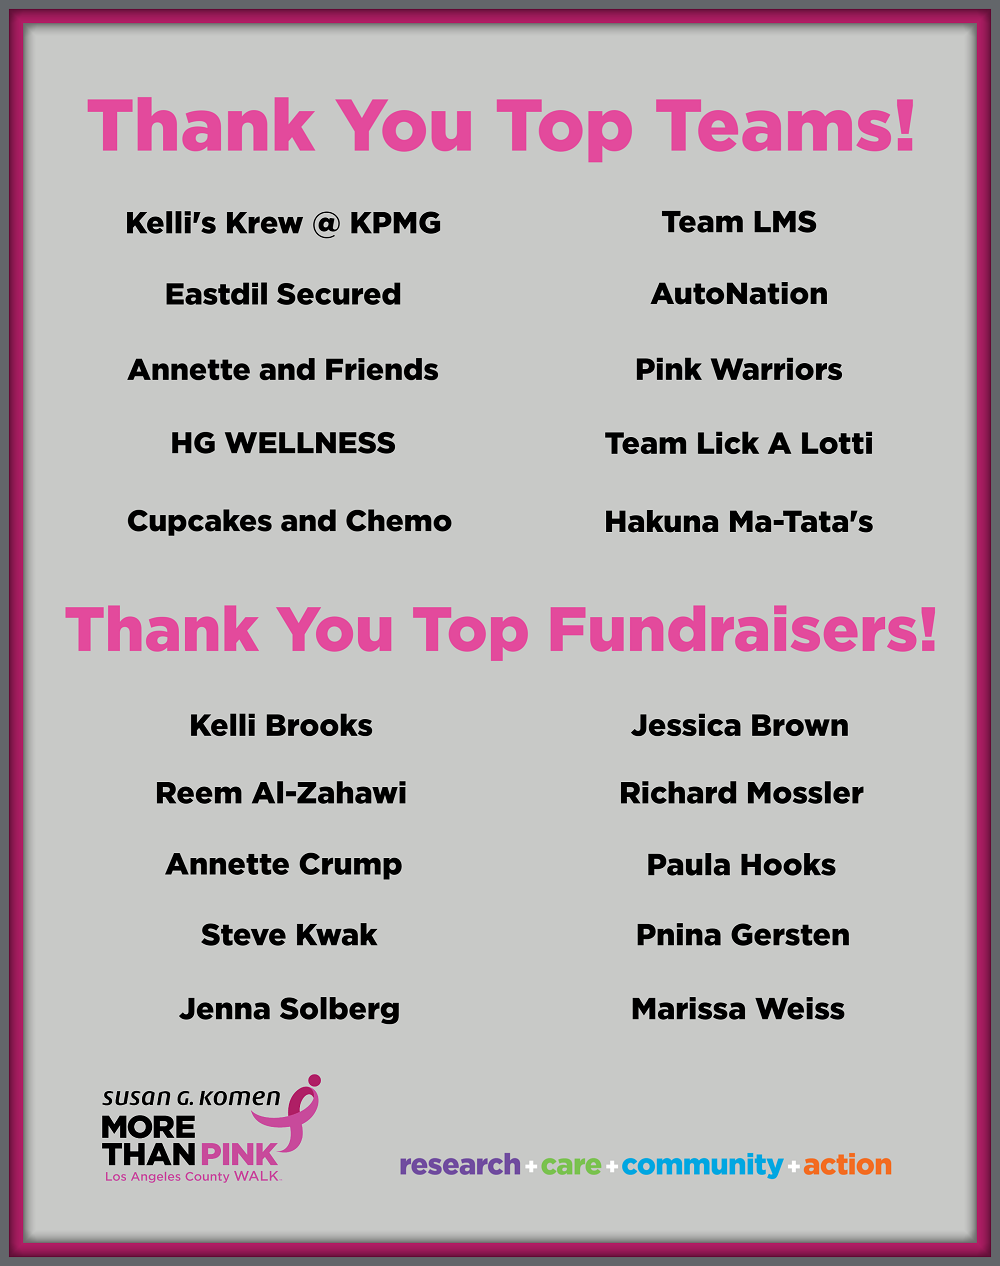 Thank You Top Teams and Fundraisers.png